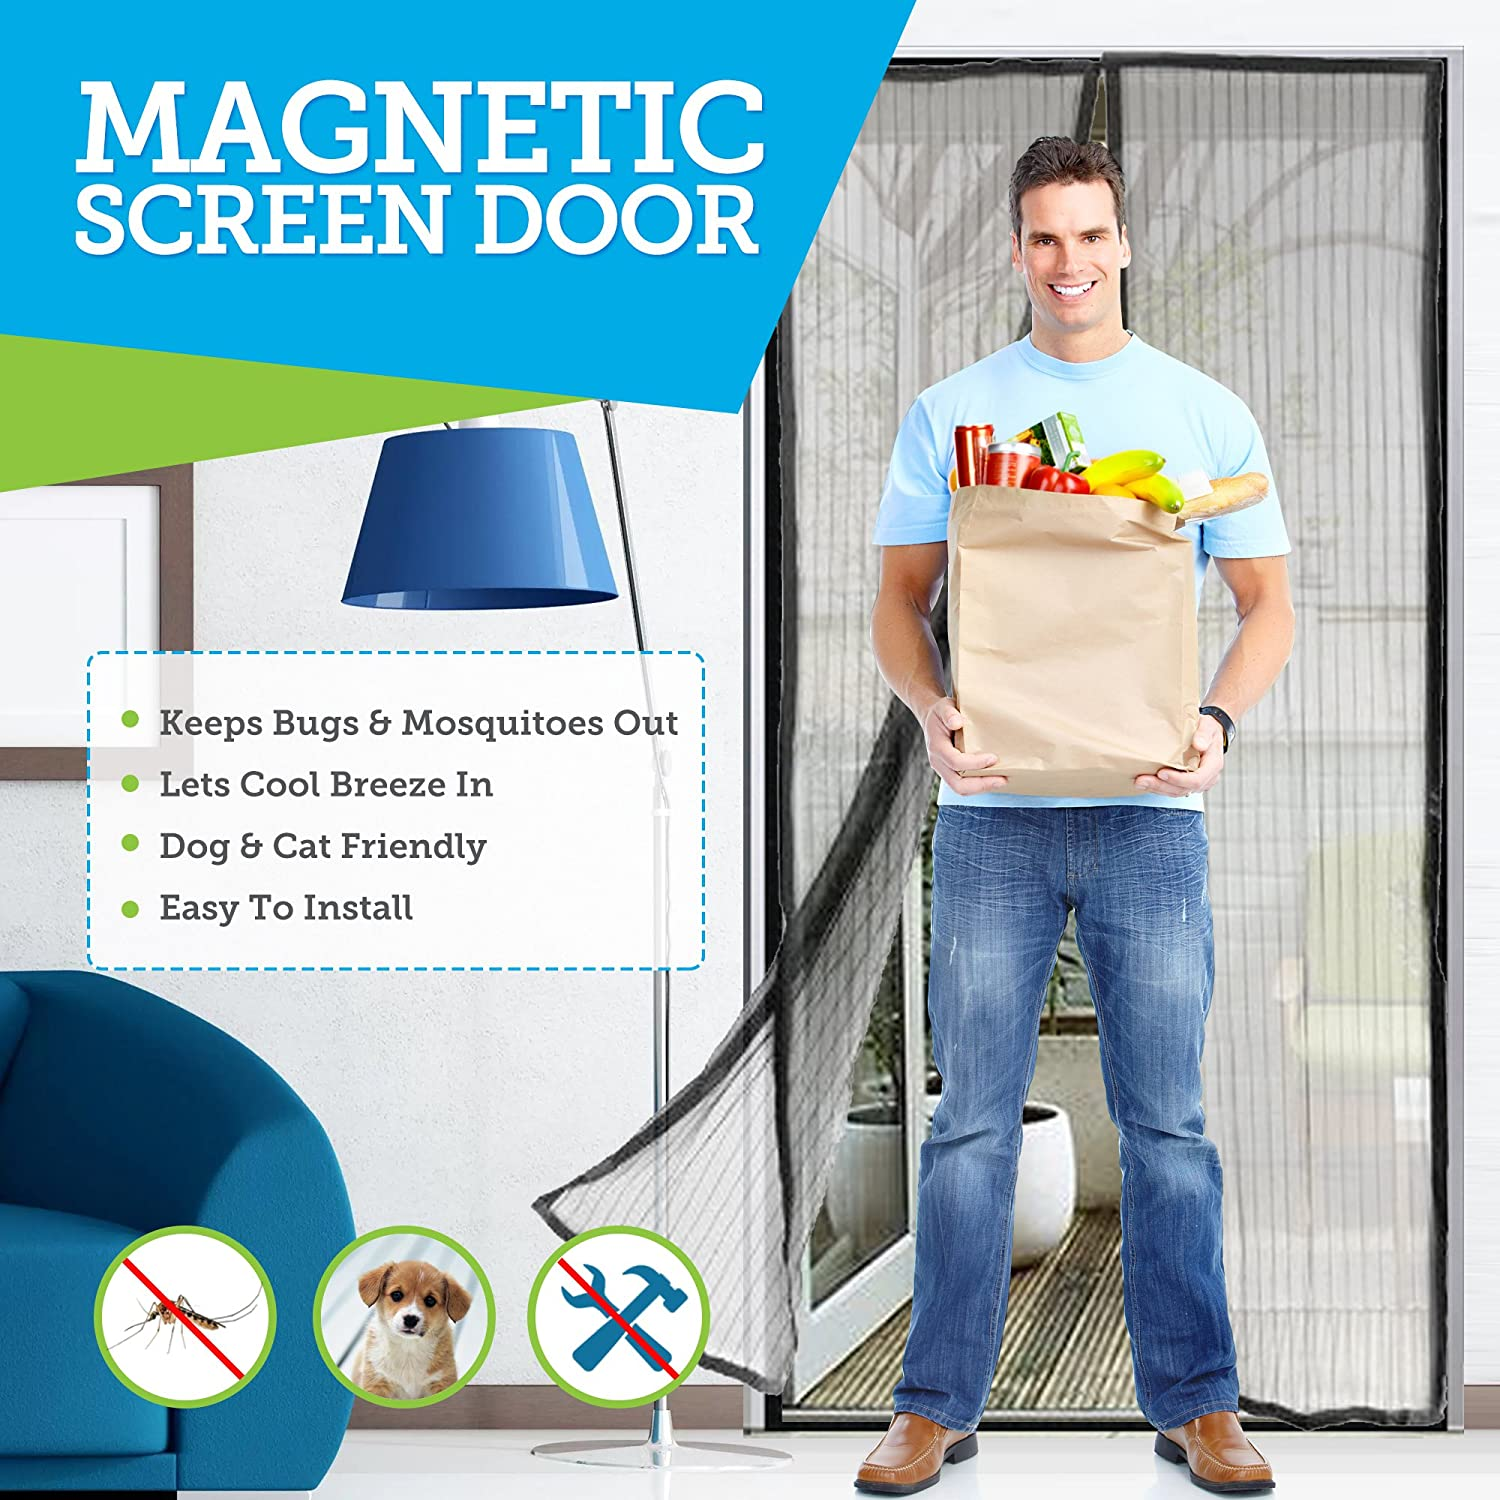 Ultimate Magnetic Screen Door - Full Frame Hook and Look Fasteners to Ensure All Bugs are Kept Out - 60g Screen Guaranteeing Durability - Door Screens with Magnets